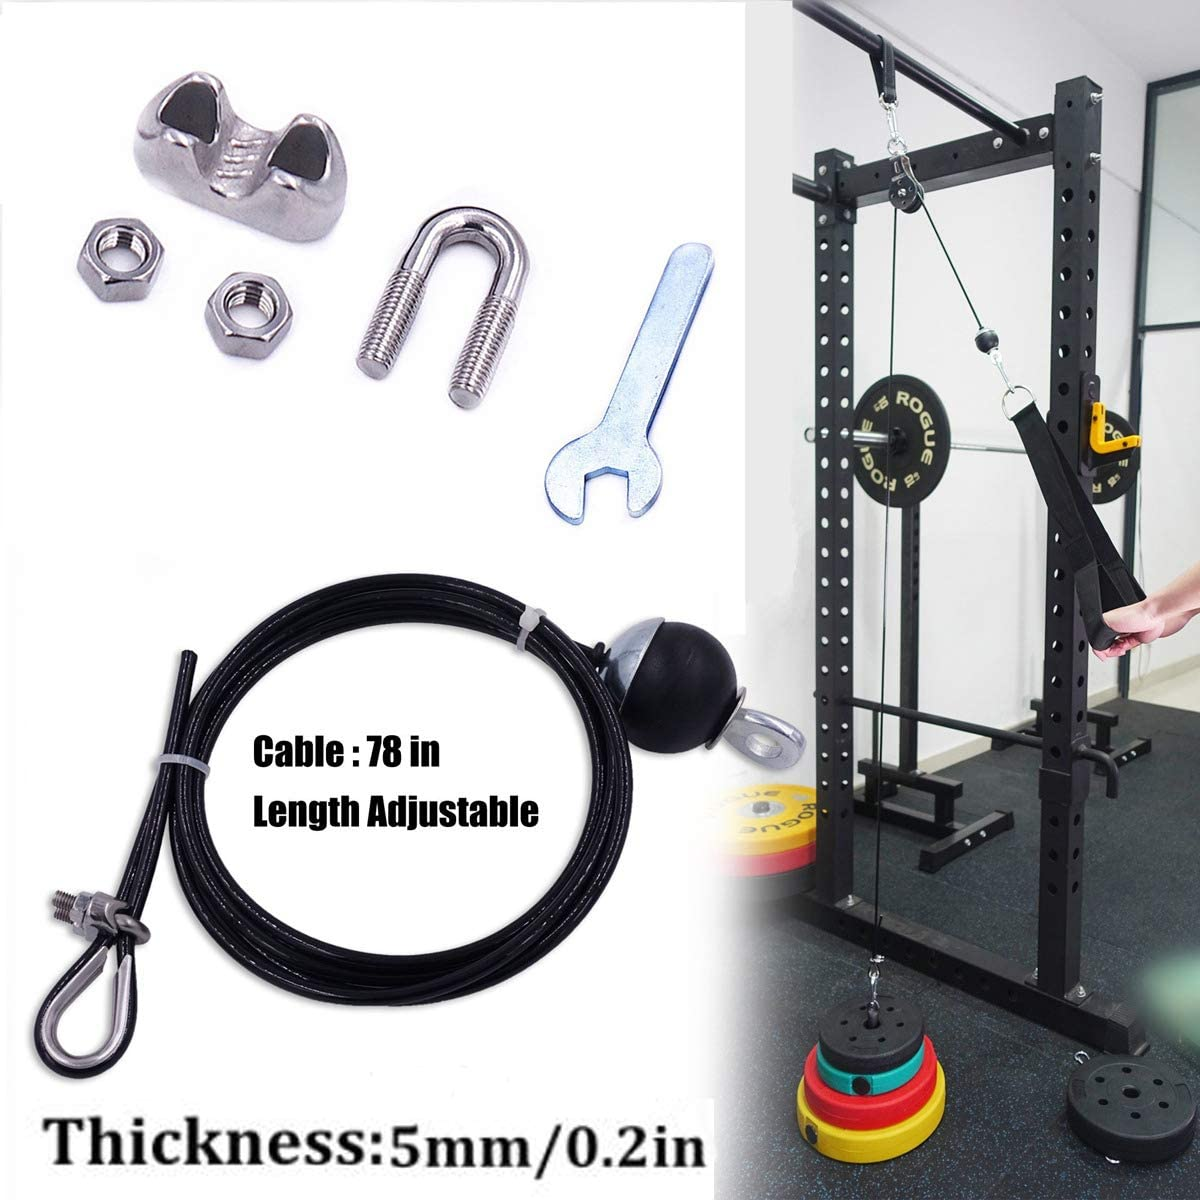 Fitness Pulley Cable Gym Workout Equipment Machine Attachment  Home Exercise US